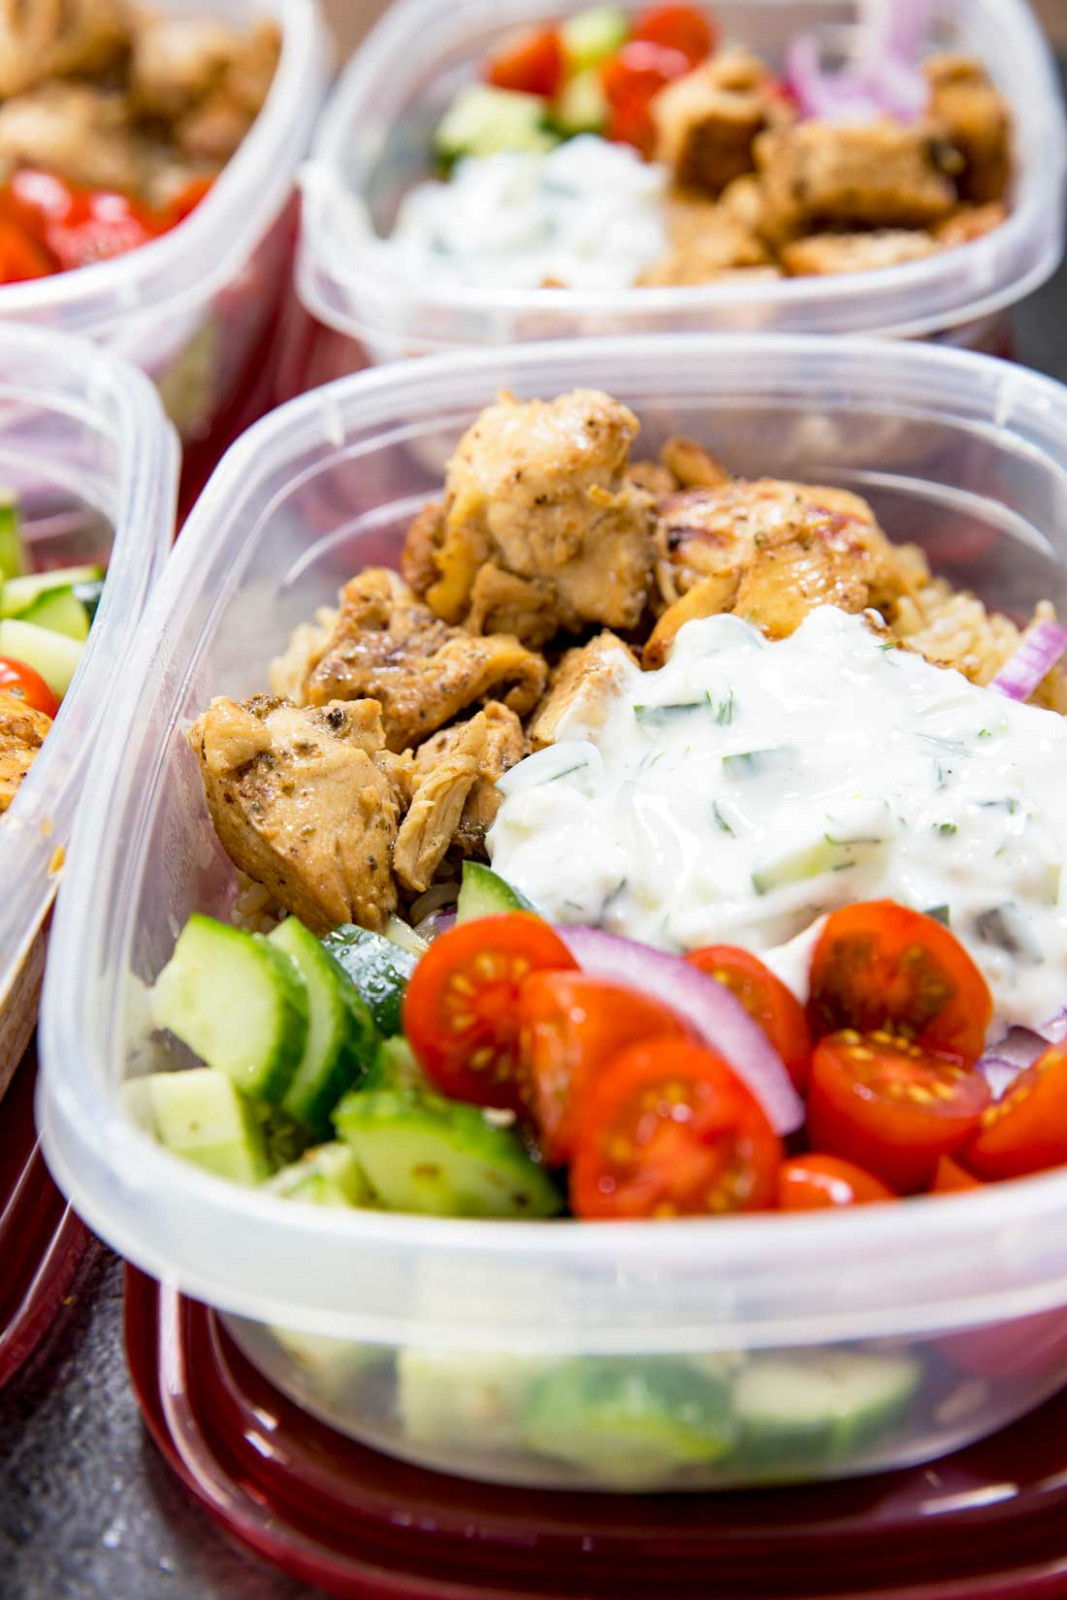 Meal Prepping Bowl Recipes: 9 Ideas So Your lunches Are ..